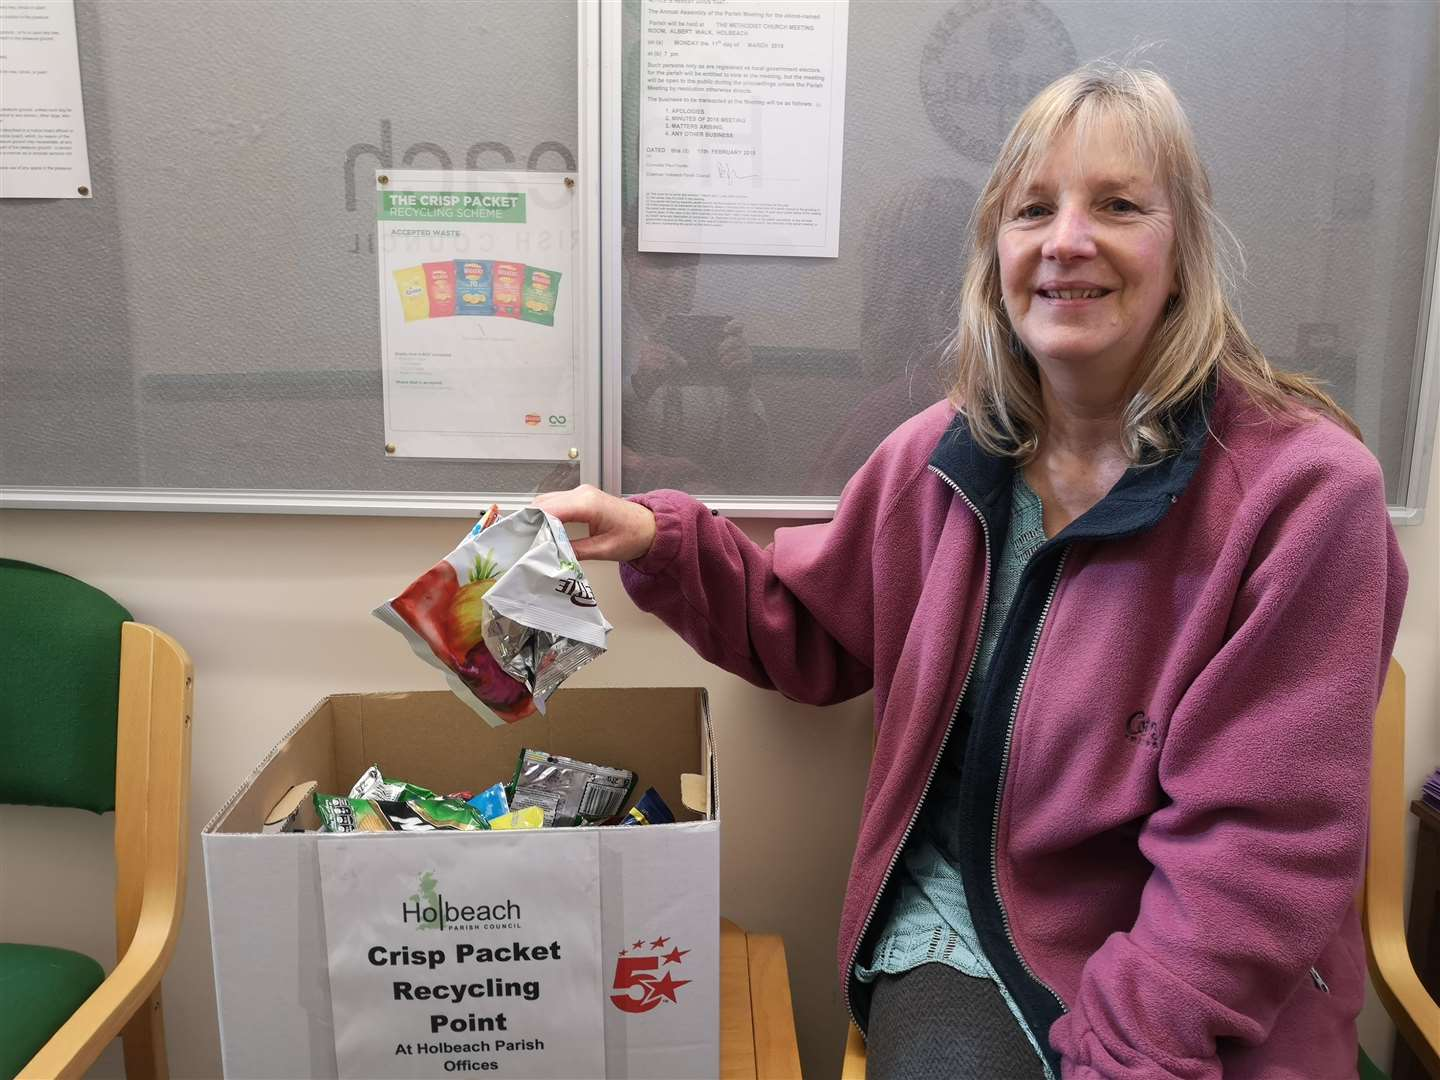 Coun Isobel Hutchinson and the crisp packet recycling point set up by Holbeach Parish Council.Photo supplied.